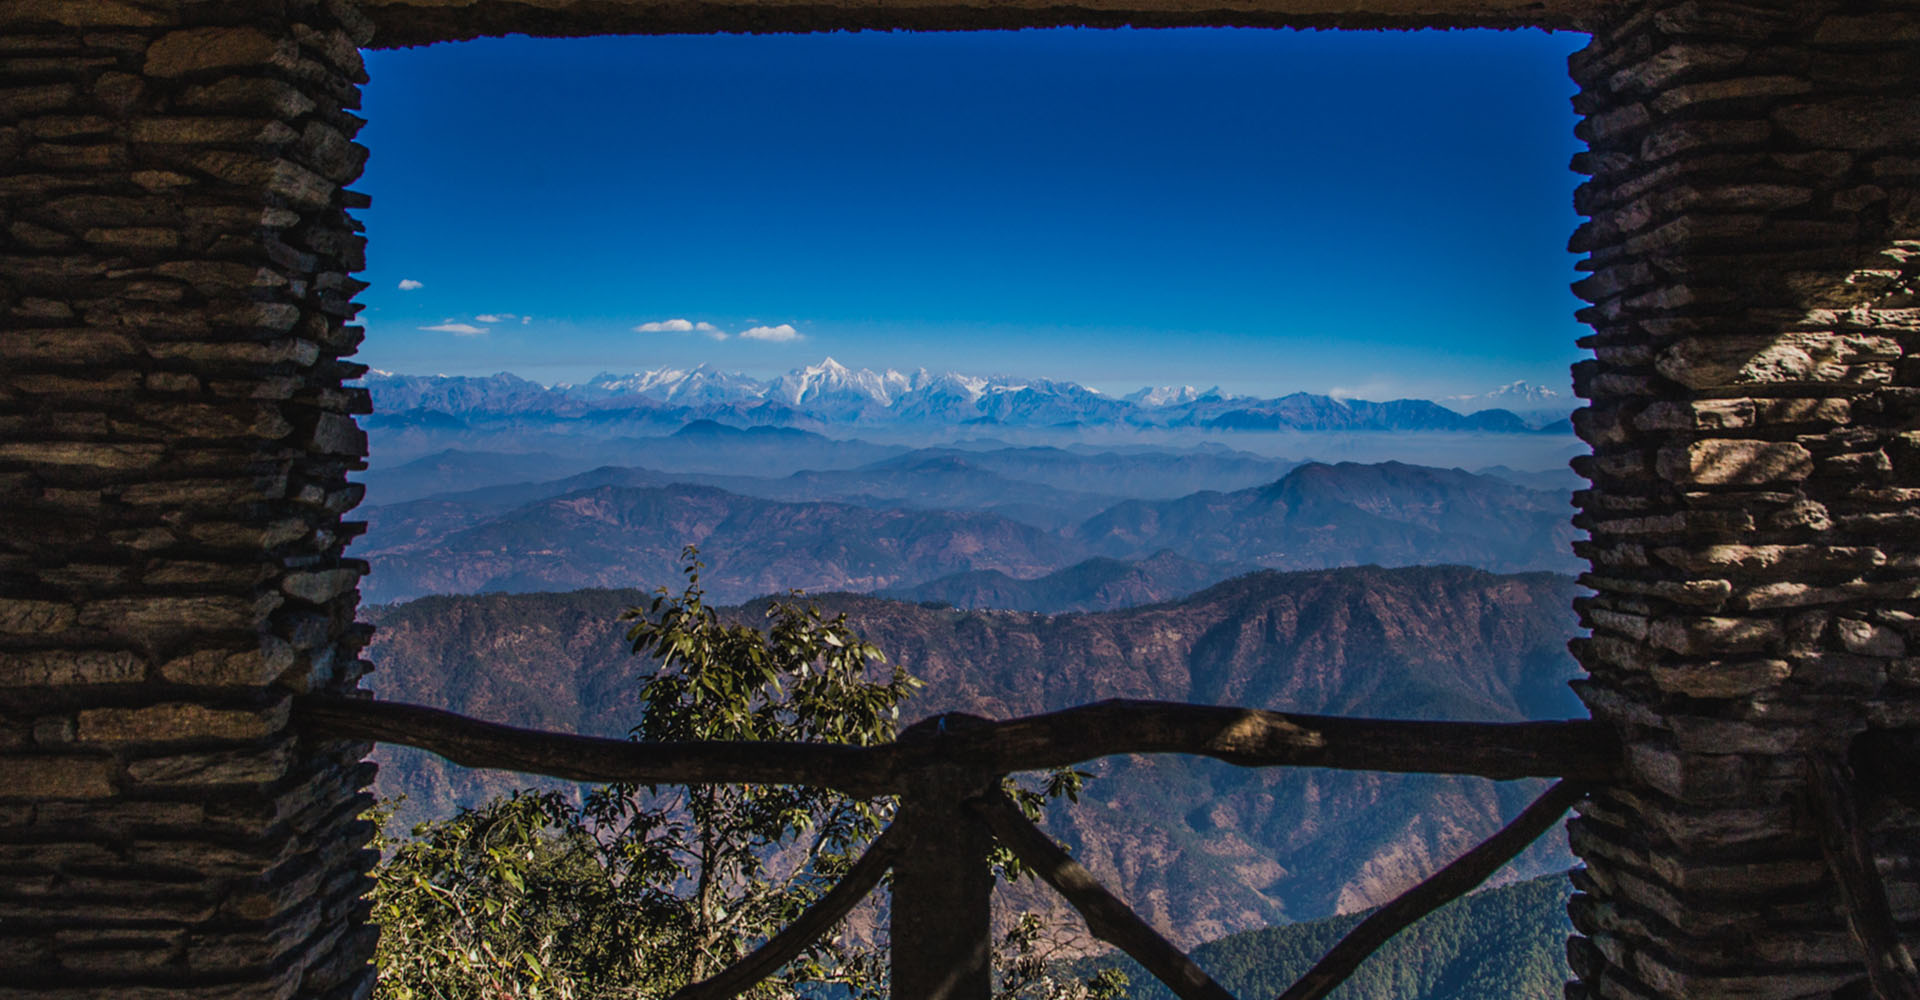 Uttarakhand – Of Yogis, Hills and Spirituality